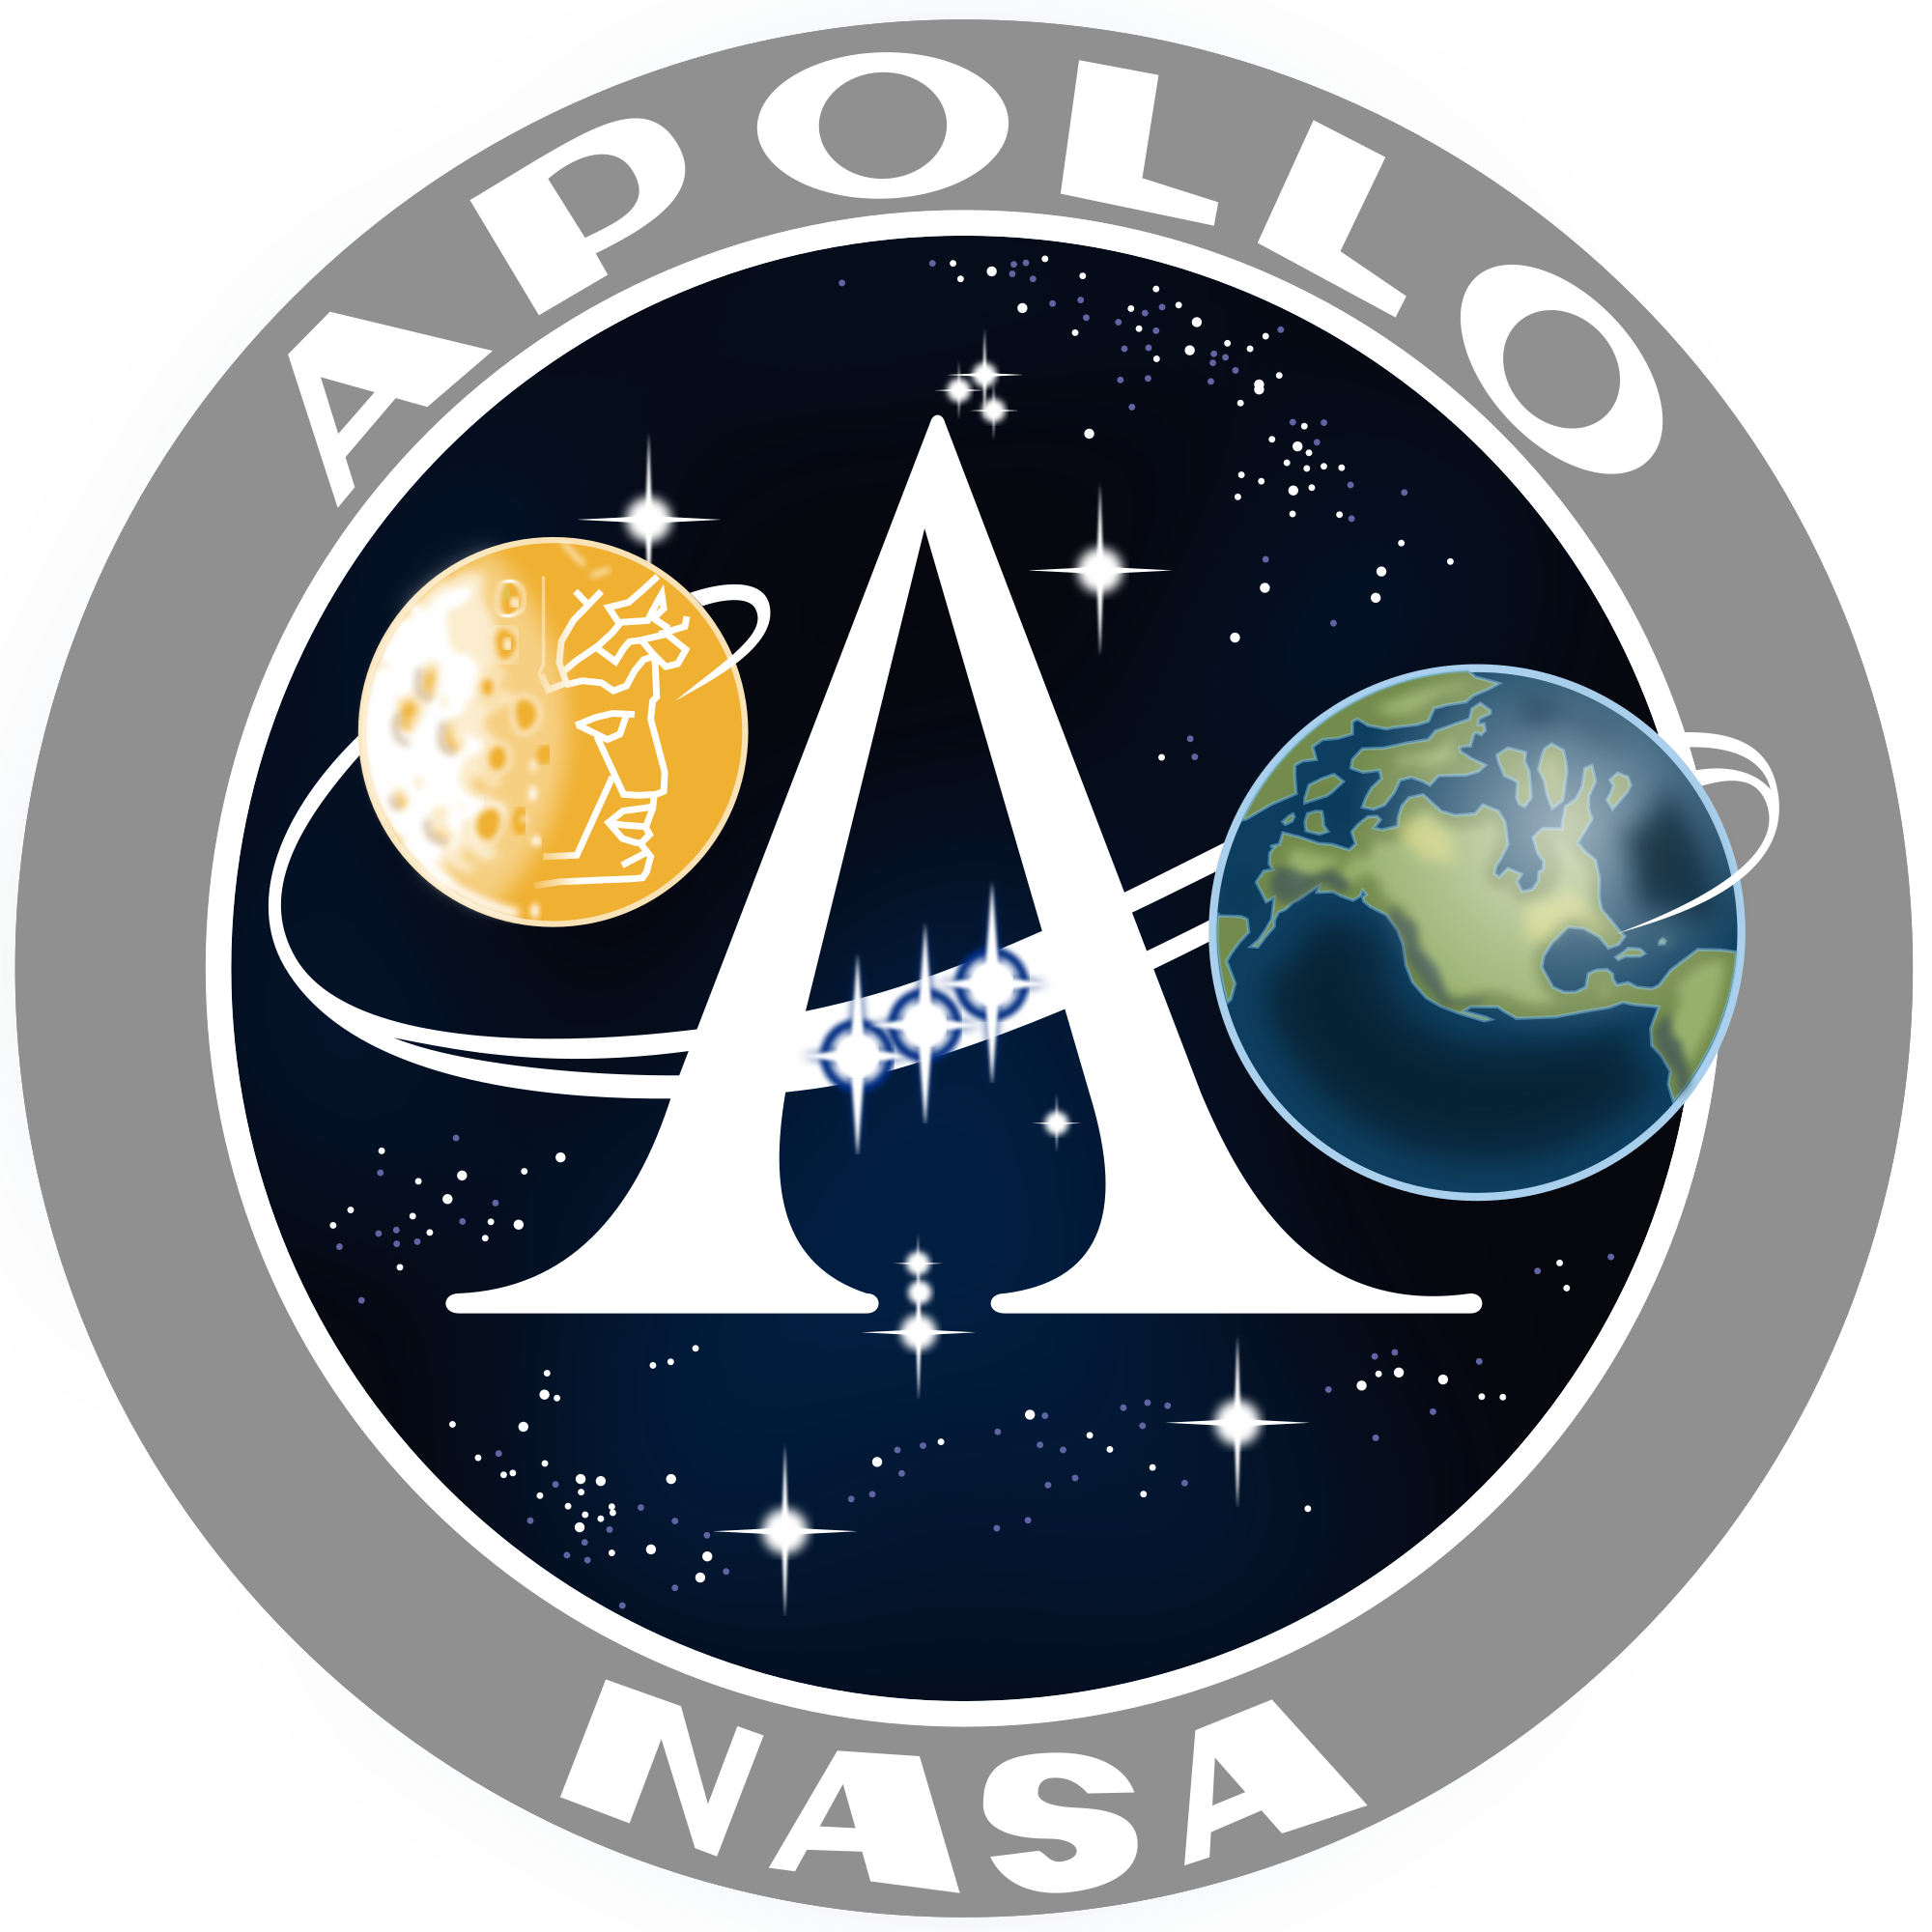 Lunar module wikipedia programsvg. Spaceship clipart apollo spacecraft